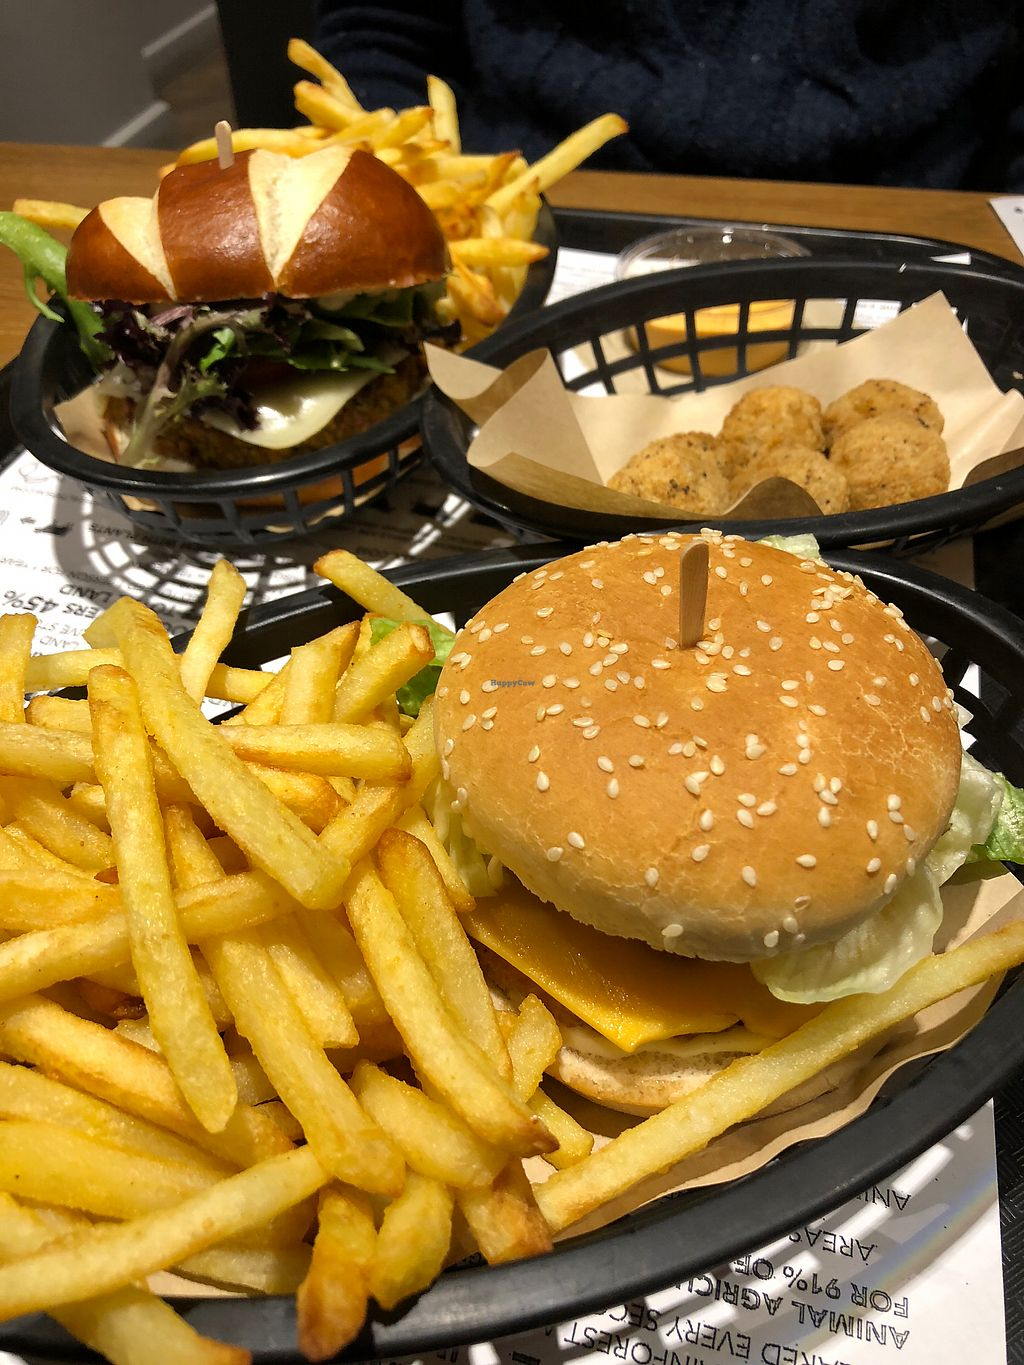 """Photo of Earth Restaurant & Takeaway  by <a href=""""/members/profile/LuisArnold"""">LuisArnold</a> <br/>Bean burger & CBC <br/> January 27, 2018  - <a href='/contact/abuse/image/86514/351529'>Report</a>"""